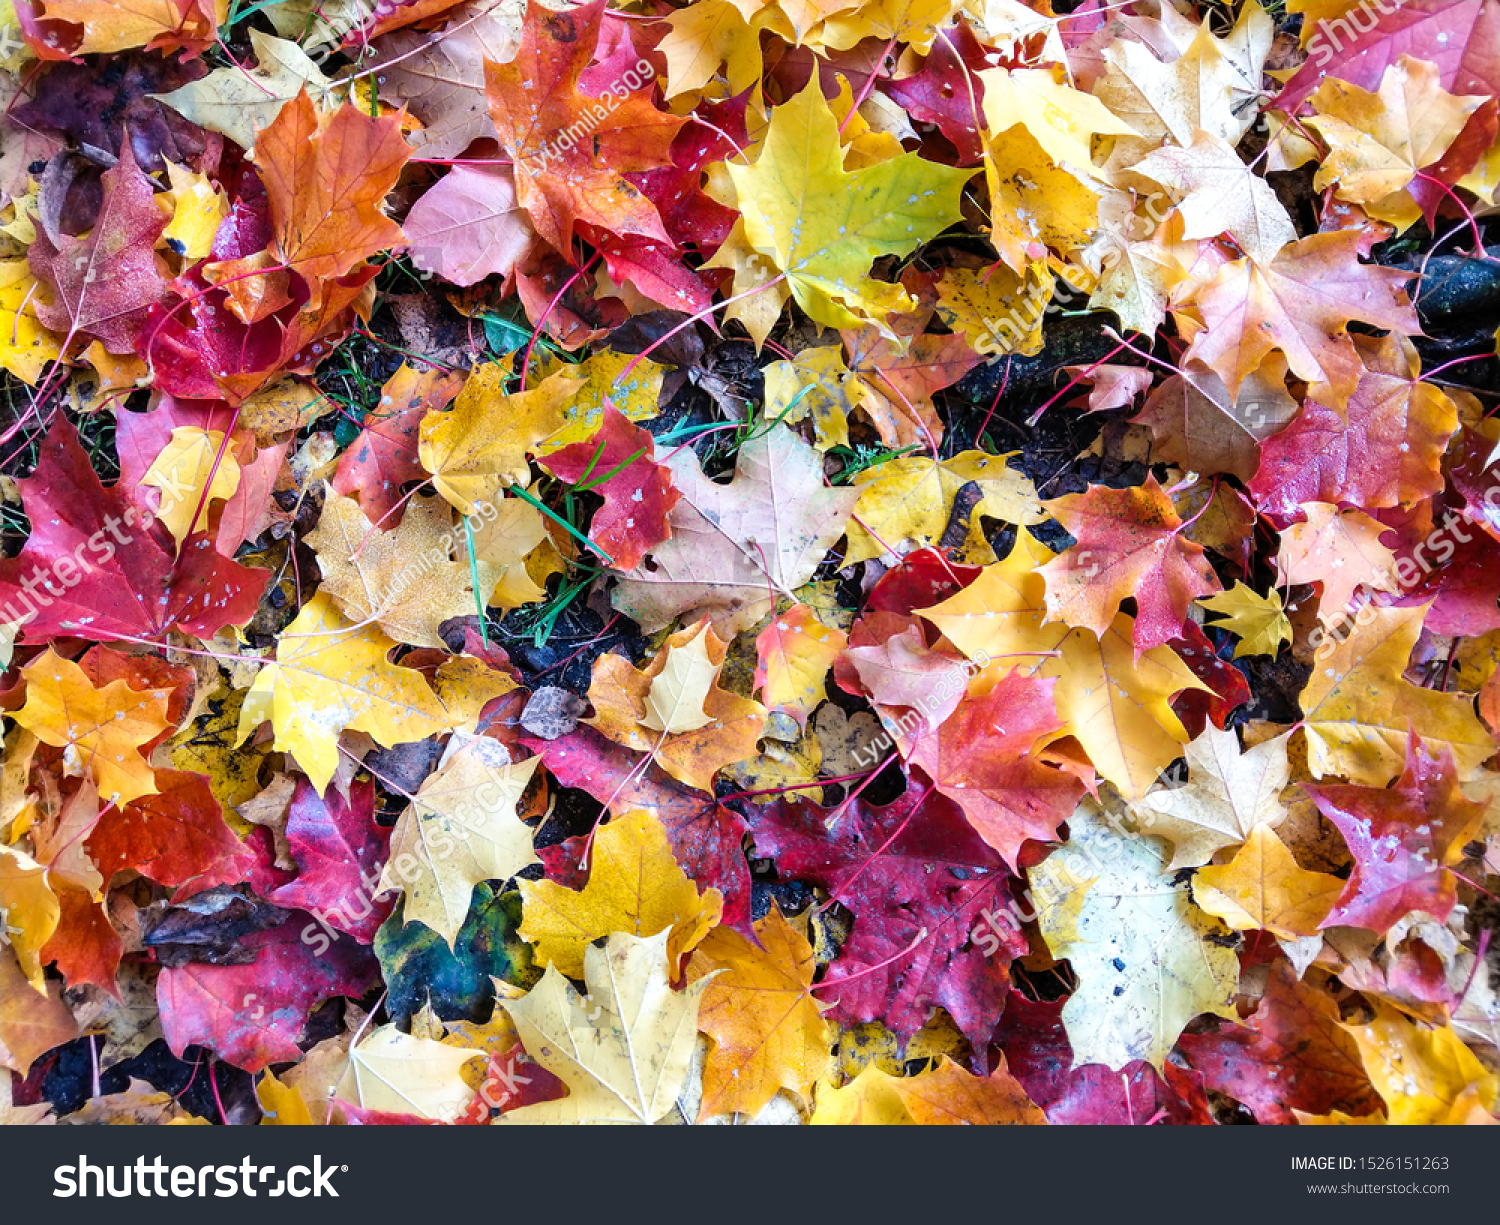 Autumn maple leaves background view. Autumn maple leaves. Autumn maple leafs. Autumn maple leaves ground #1526151263